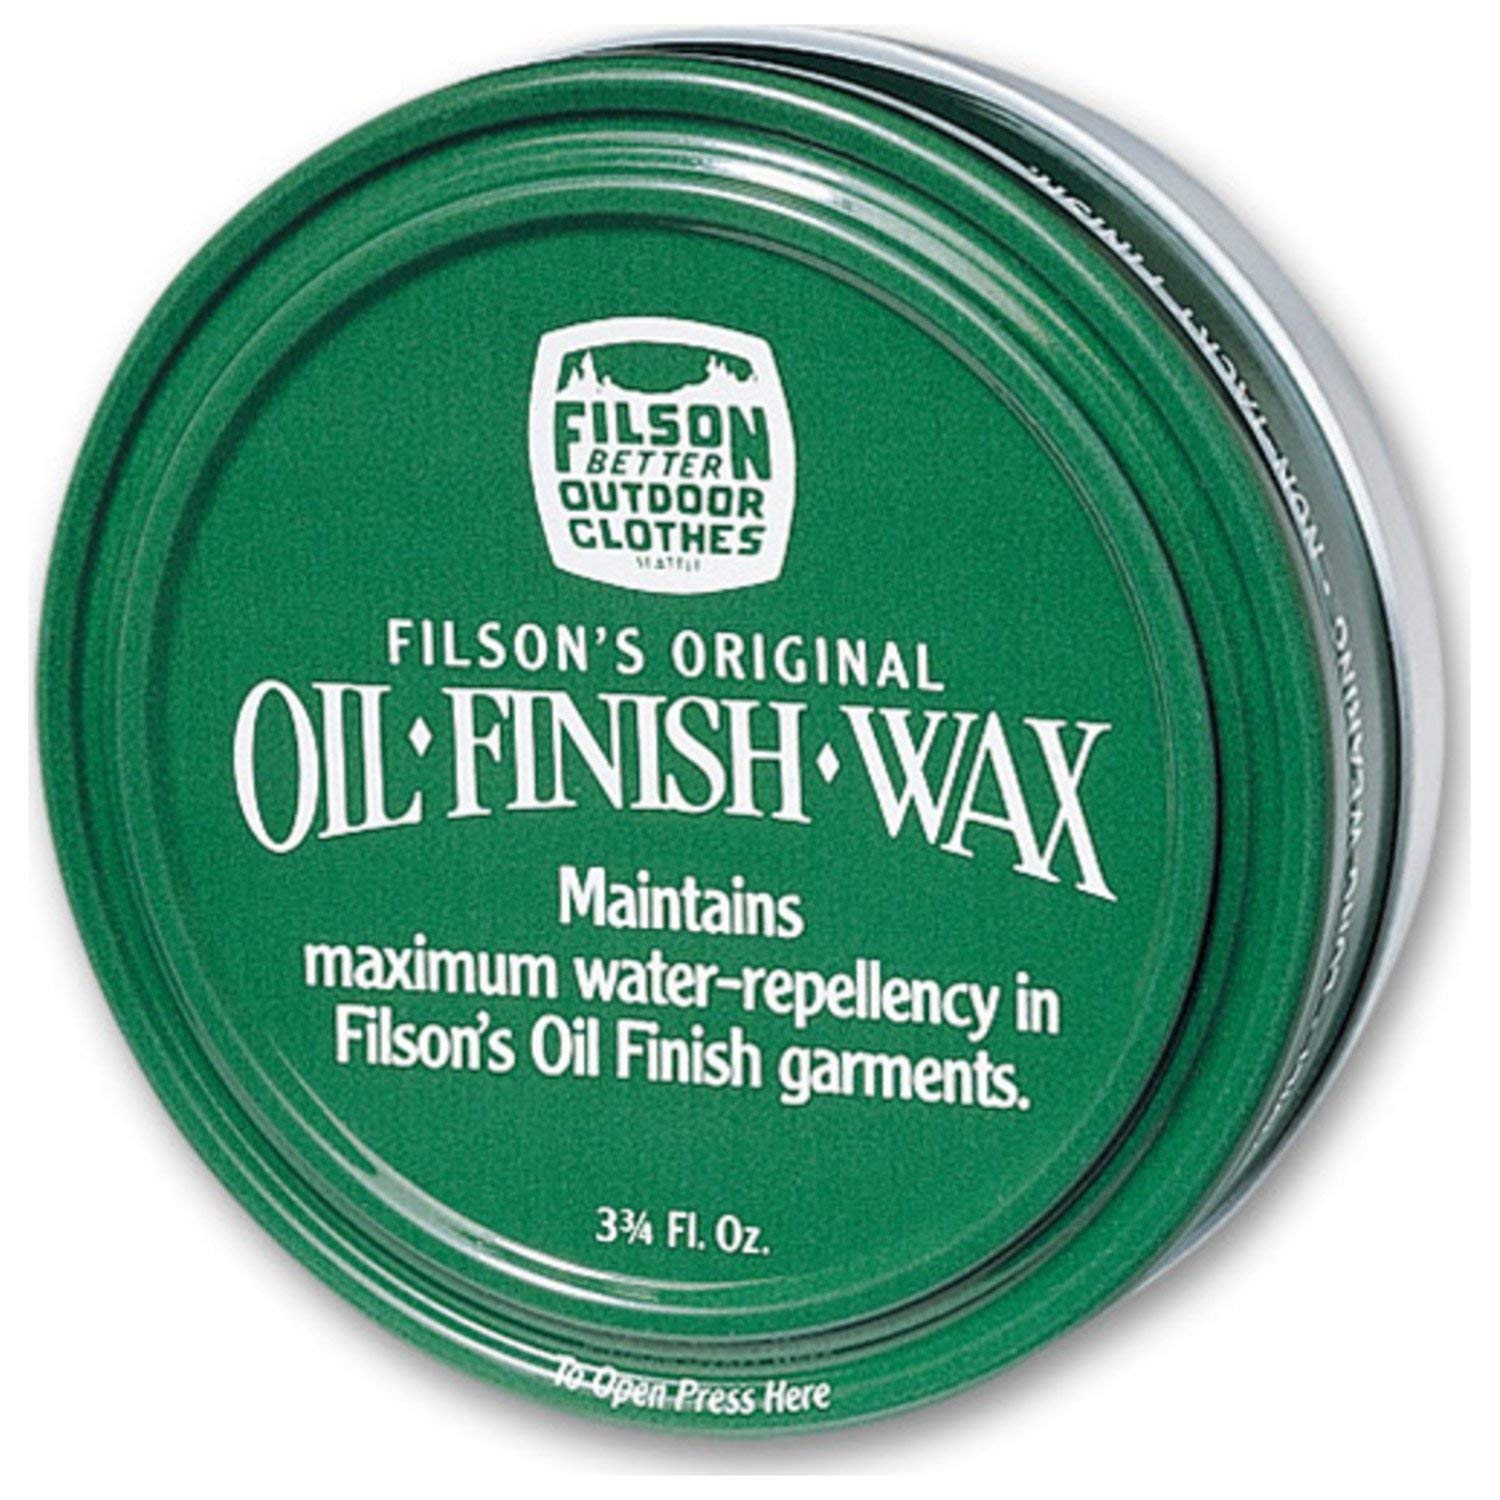 Filson Oil Finish Wax 11069033 by Filson